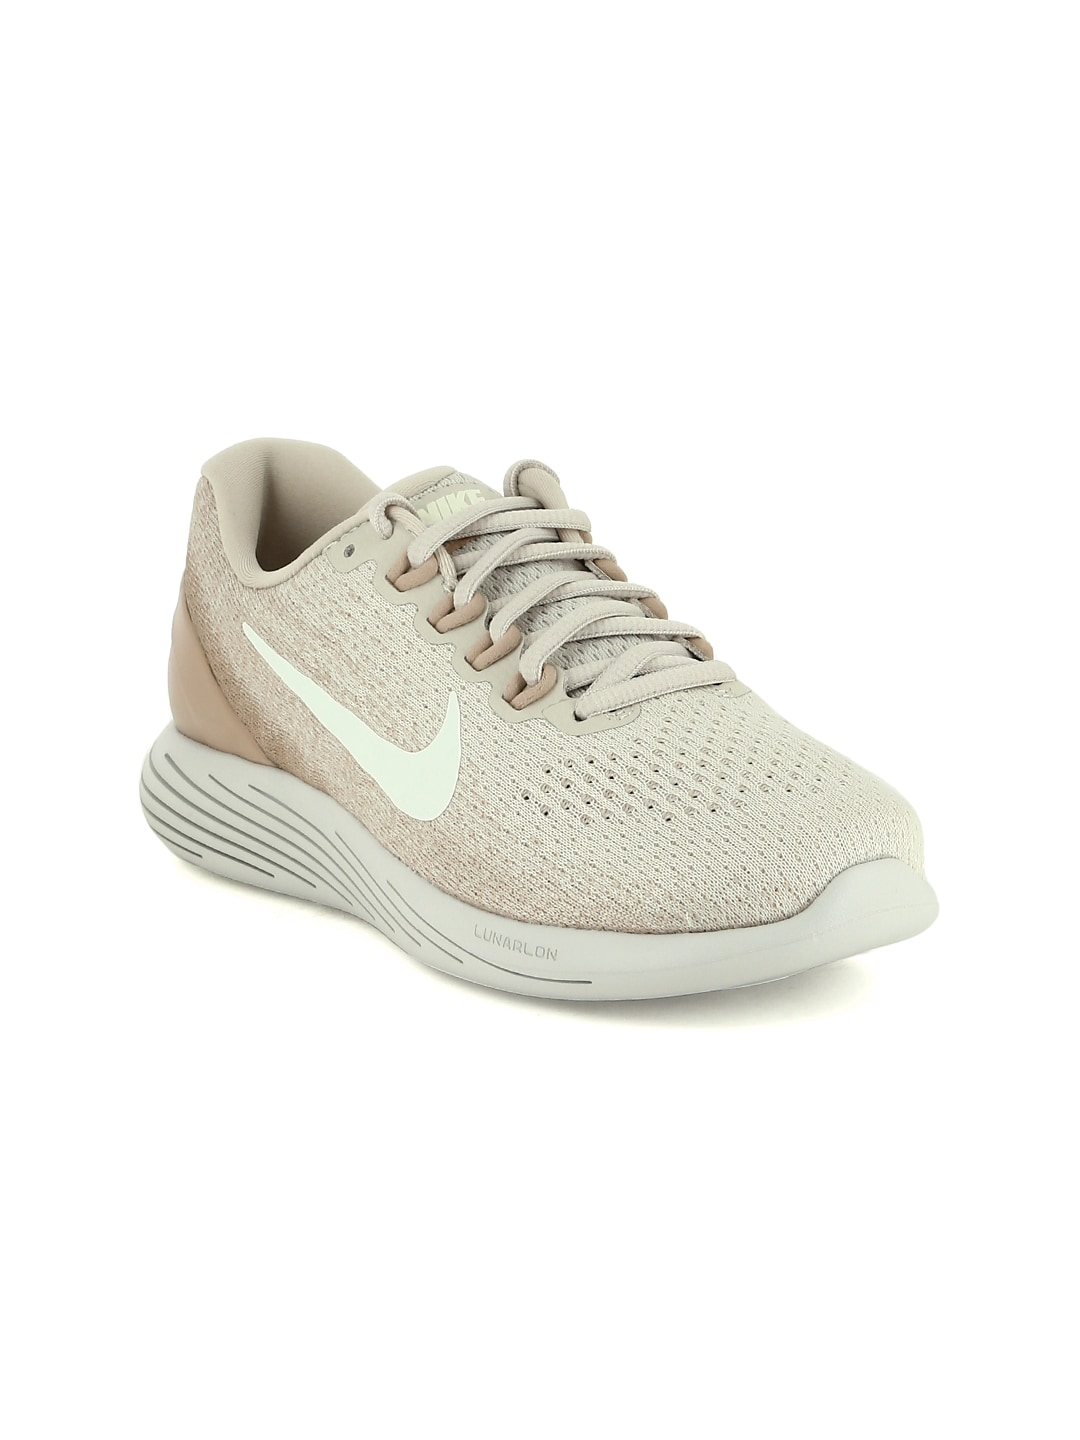 638757383325 Nike Lunarglide - Buy Nike Lunarglide online in India